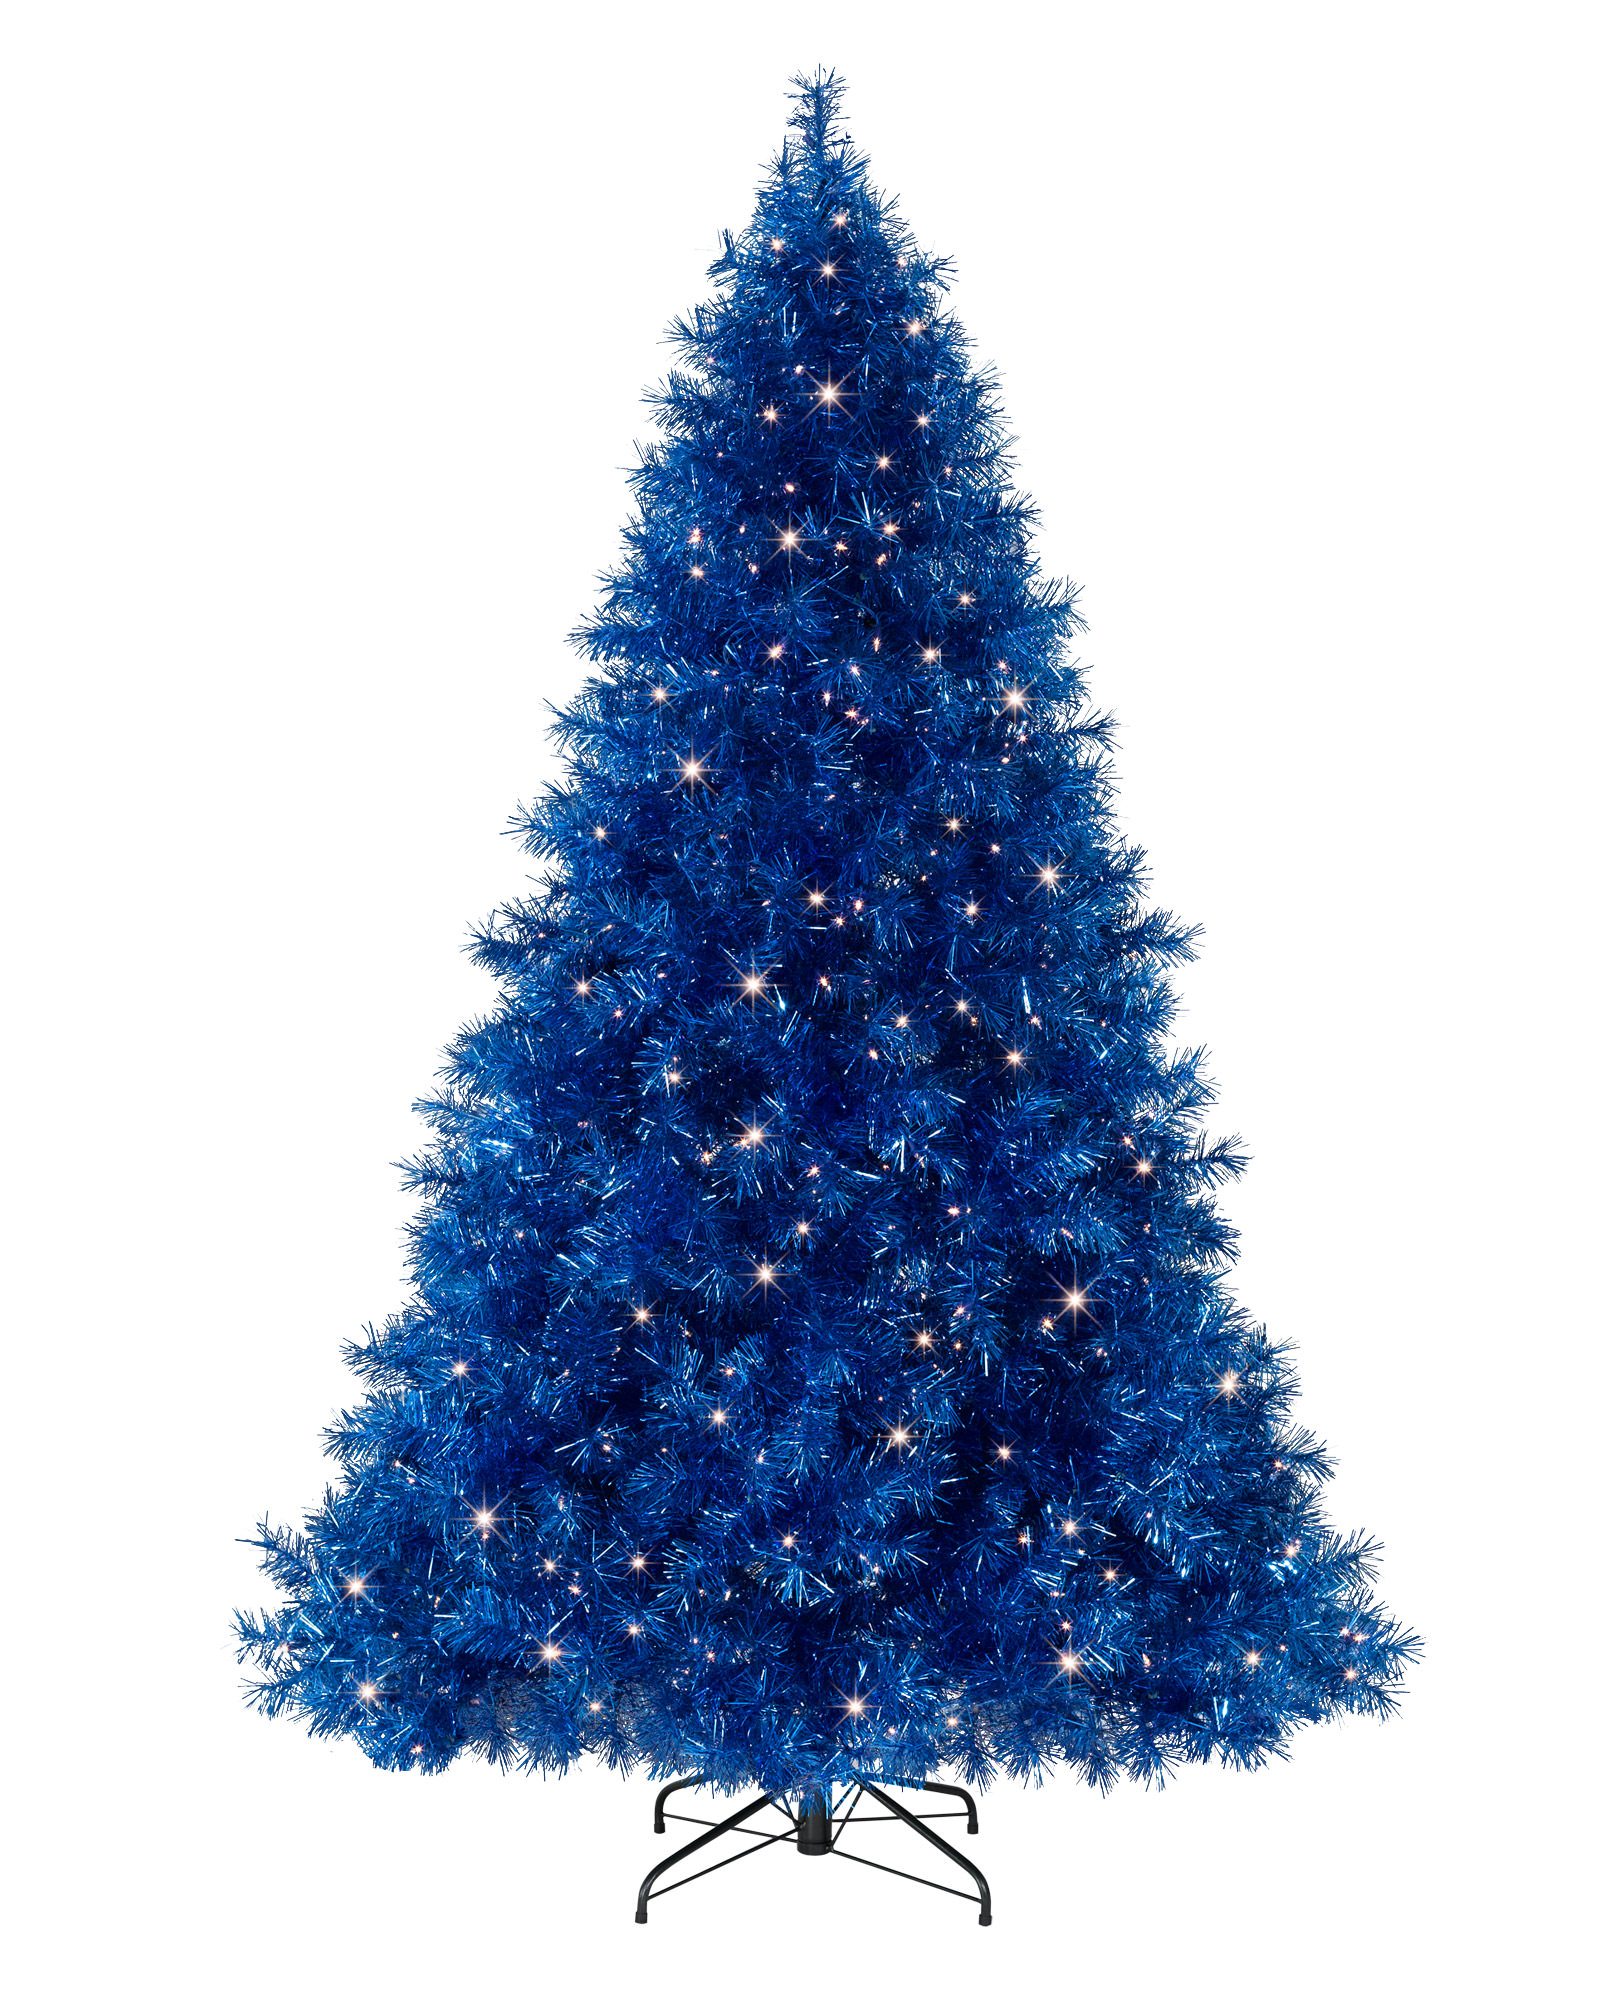 Blue Christmas Tree Clipart.